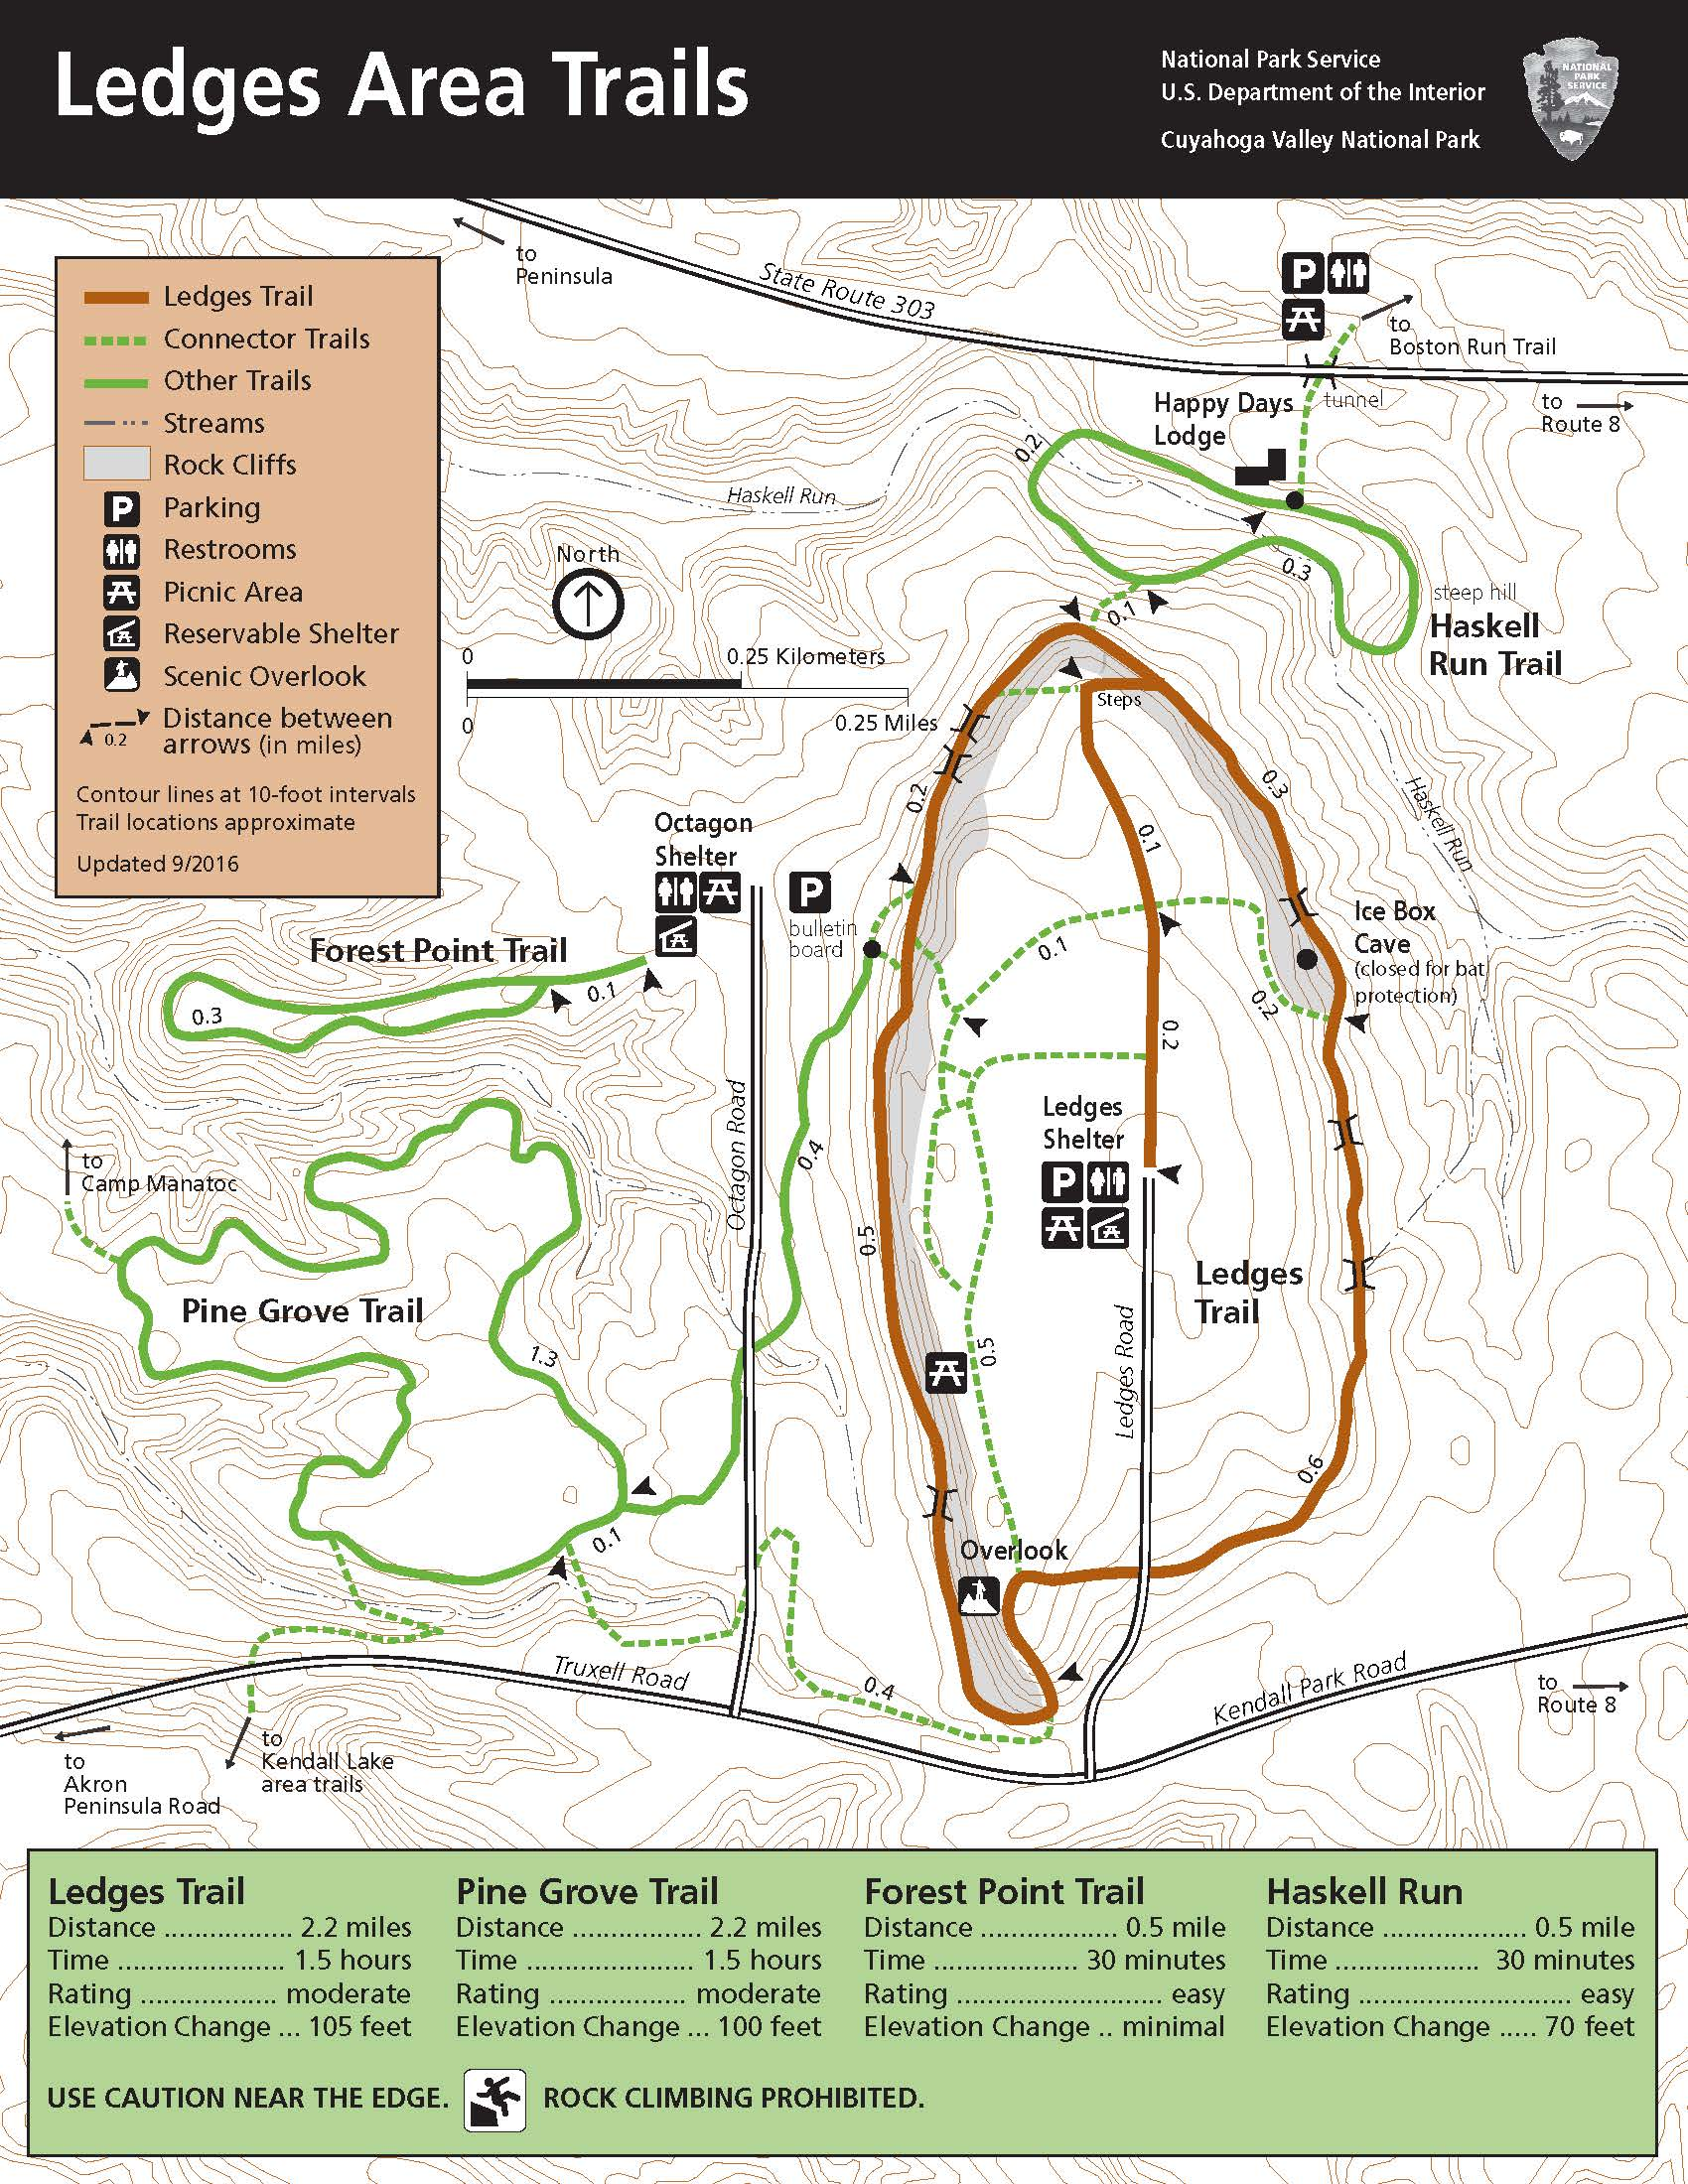 Map Of The Ledges Area And Trails - Map of the Ledges area and trails